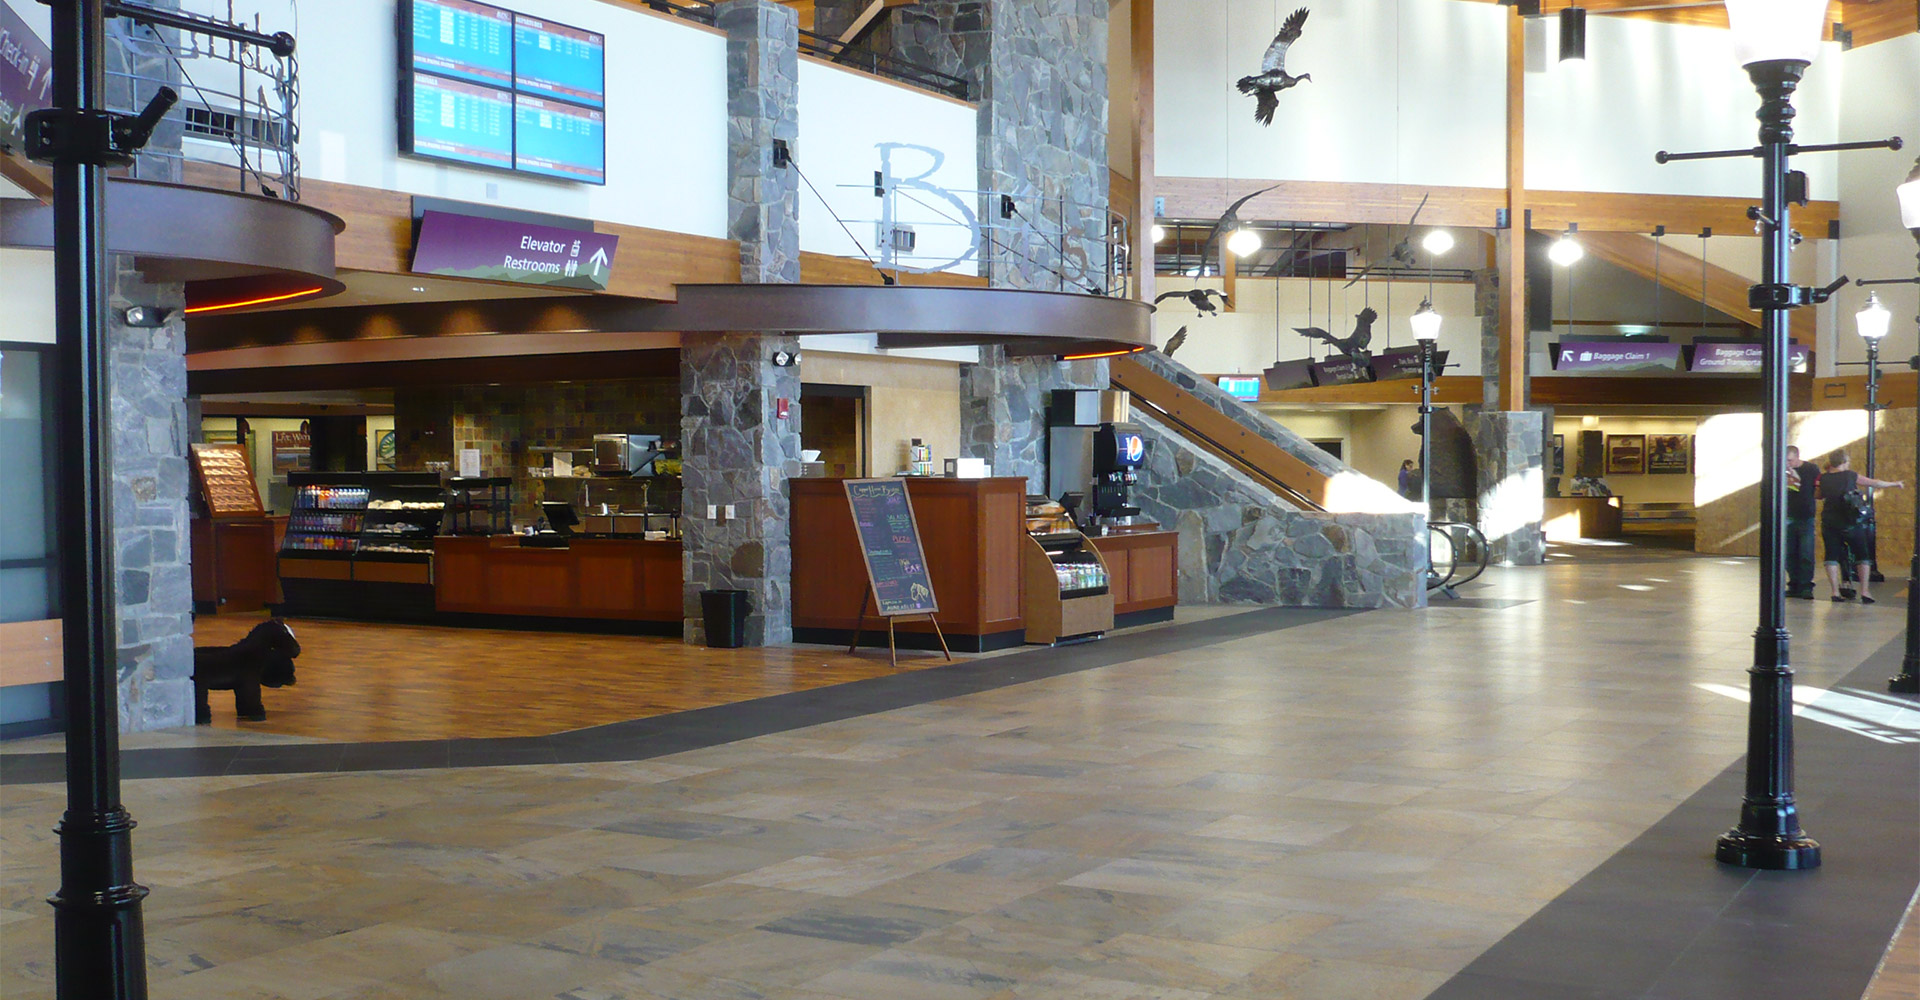 Interior of Bozeman Yellowstone Airport.